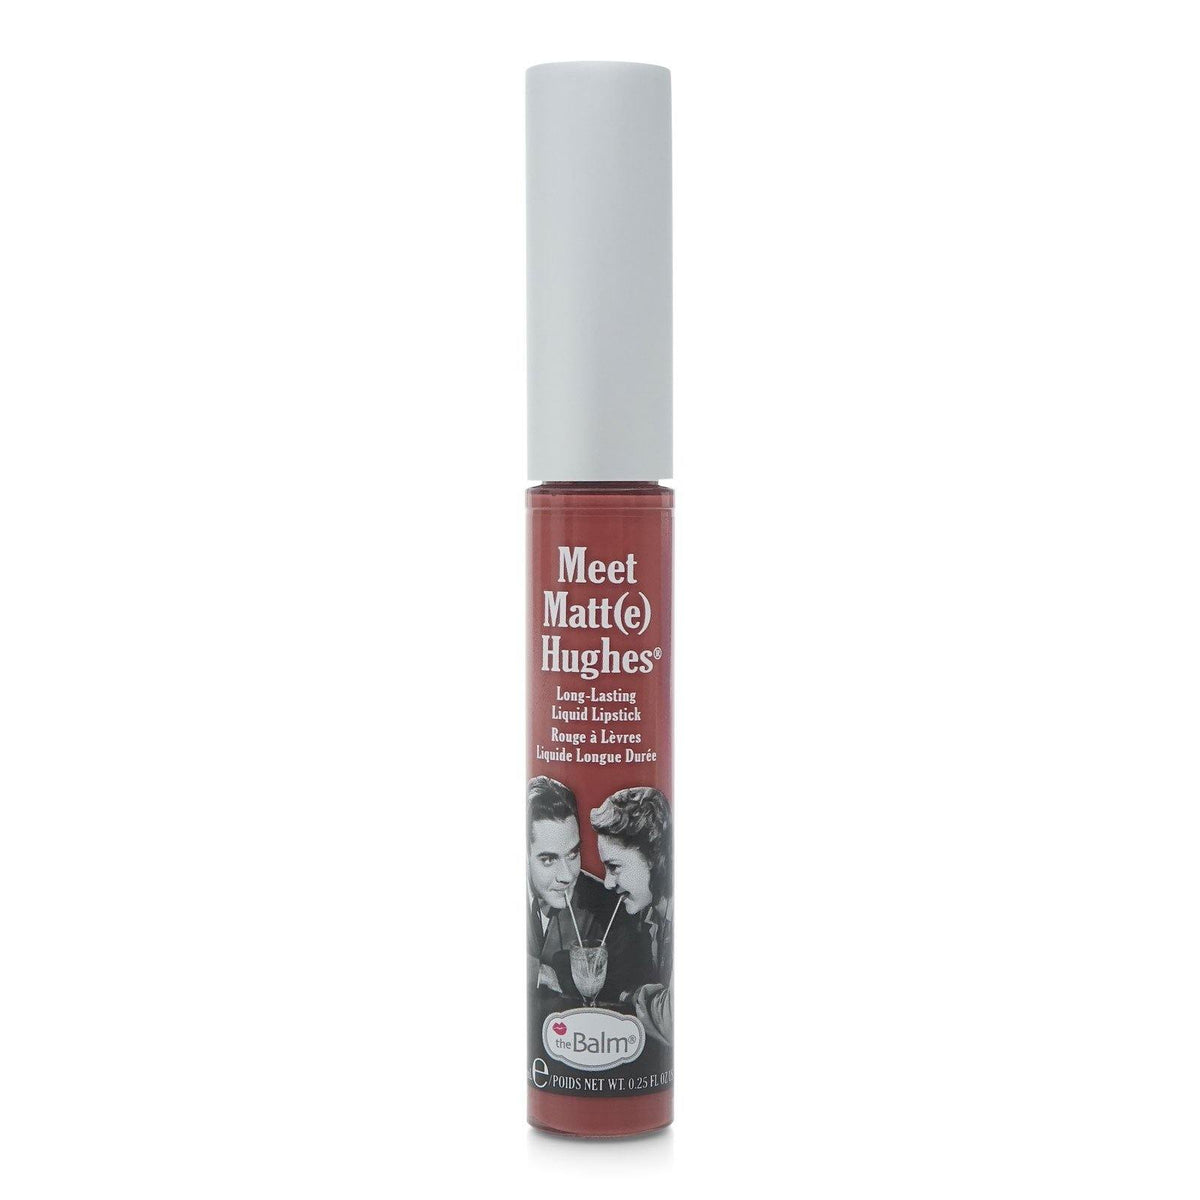 TheBalm Meet Matt(e) Hughes Long Lasting Liquid Lipstick 0.25 oz (3/cs)